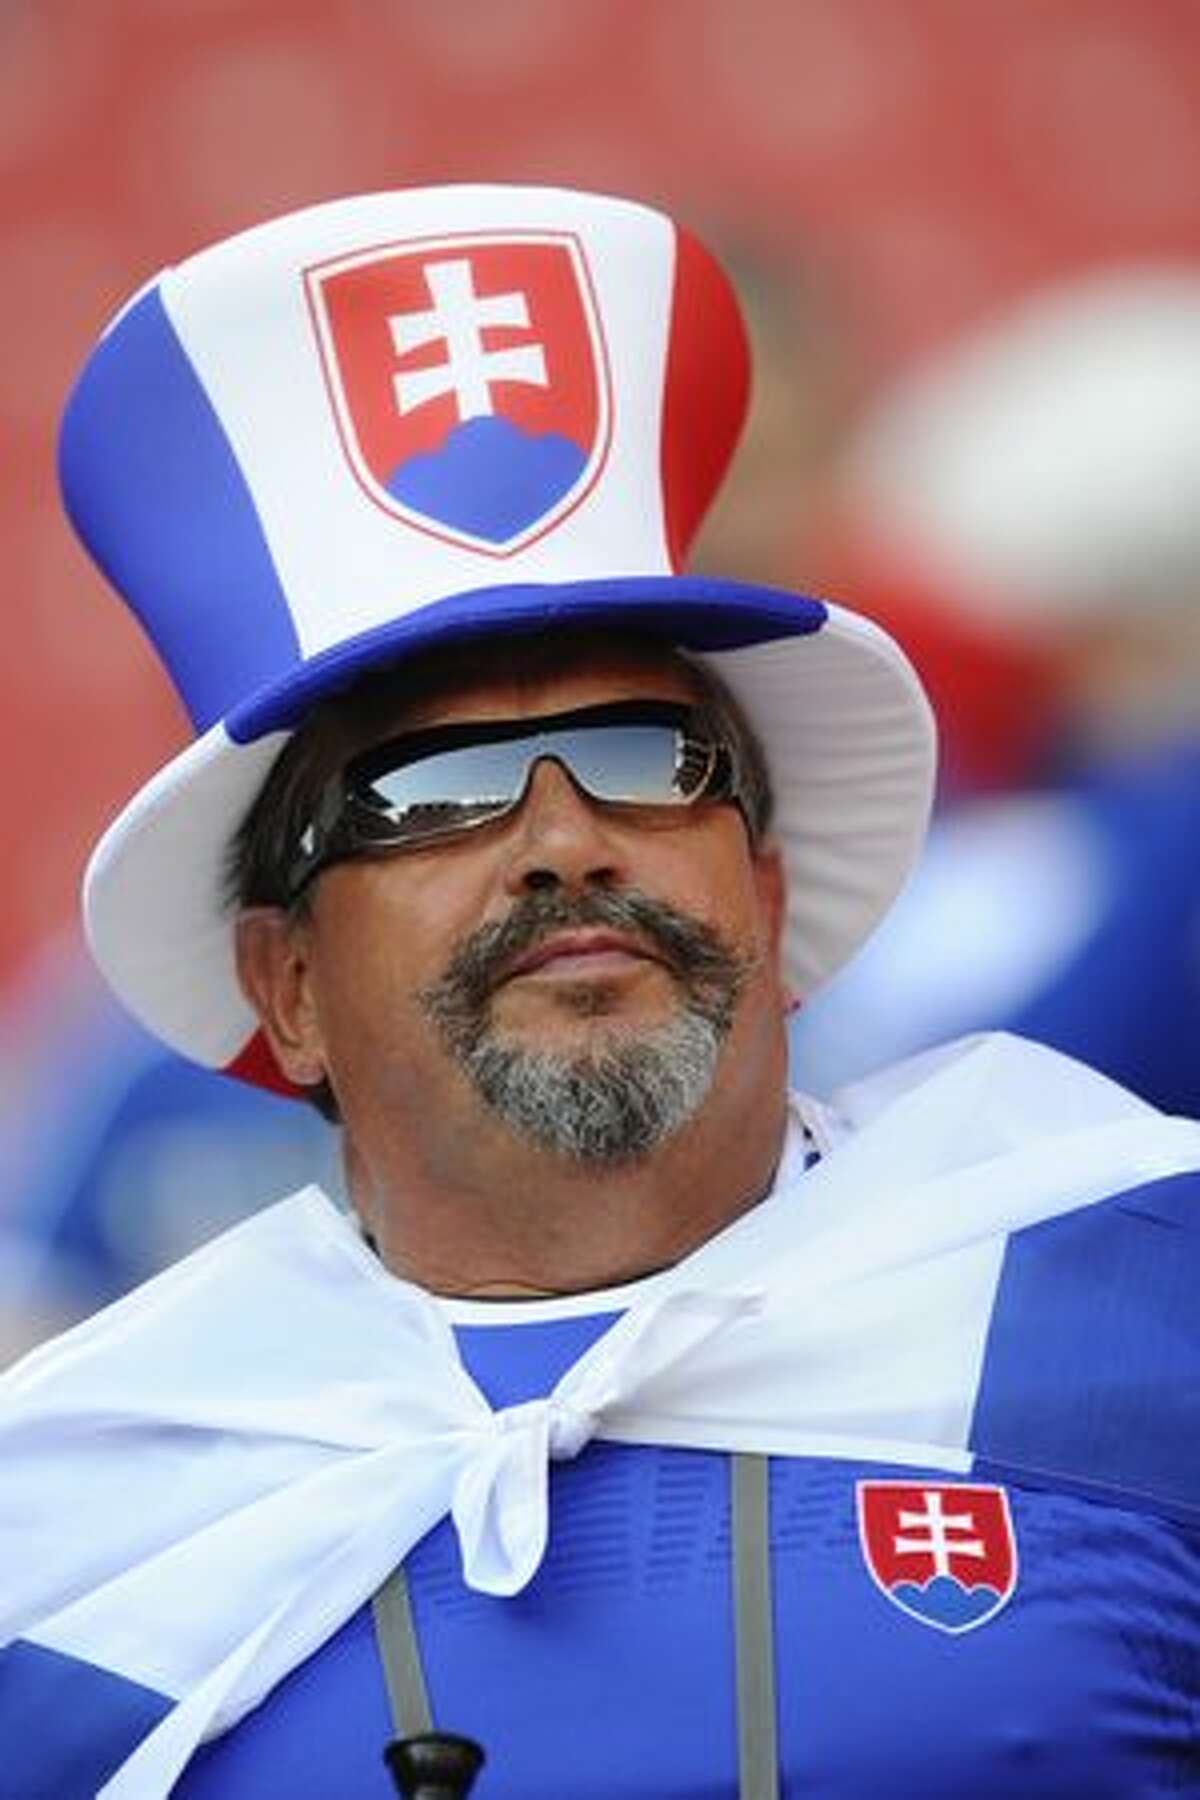 A Slovak supporter cheers prior to their Group F first round 2010 World Cup football match on June 24, 2010 at Ellis Park stadium in Johannesburg.